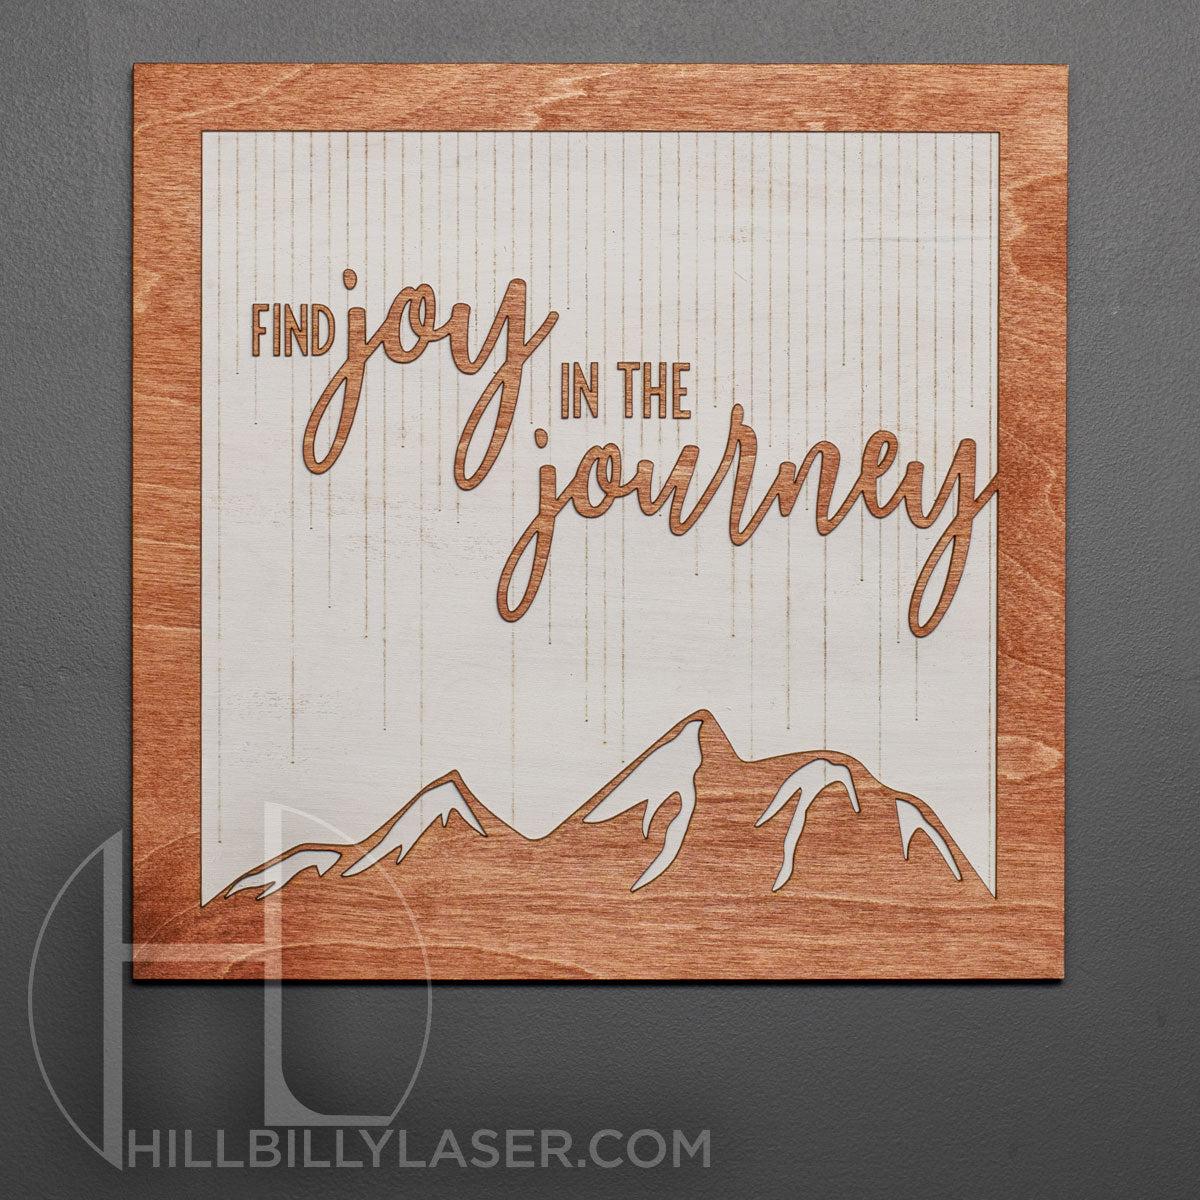 Find Joy in the Journey - Hillbilly Laser